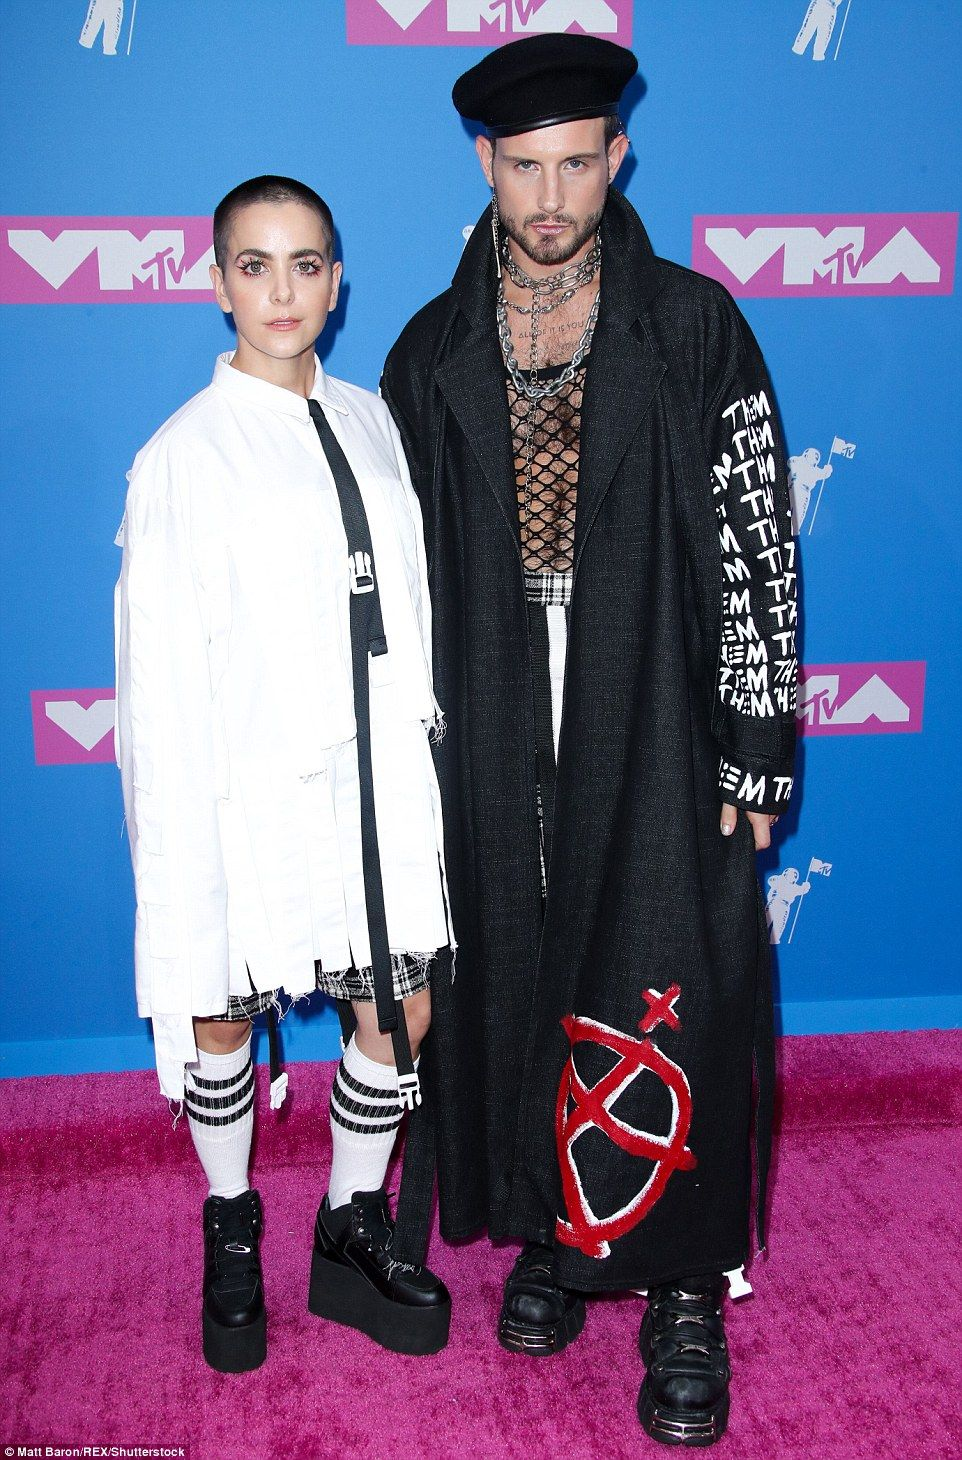 Photo of MTV Video Music Awards 2018: Worst dressed stars arrive on red carpet